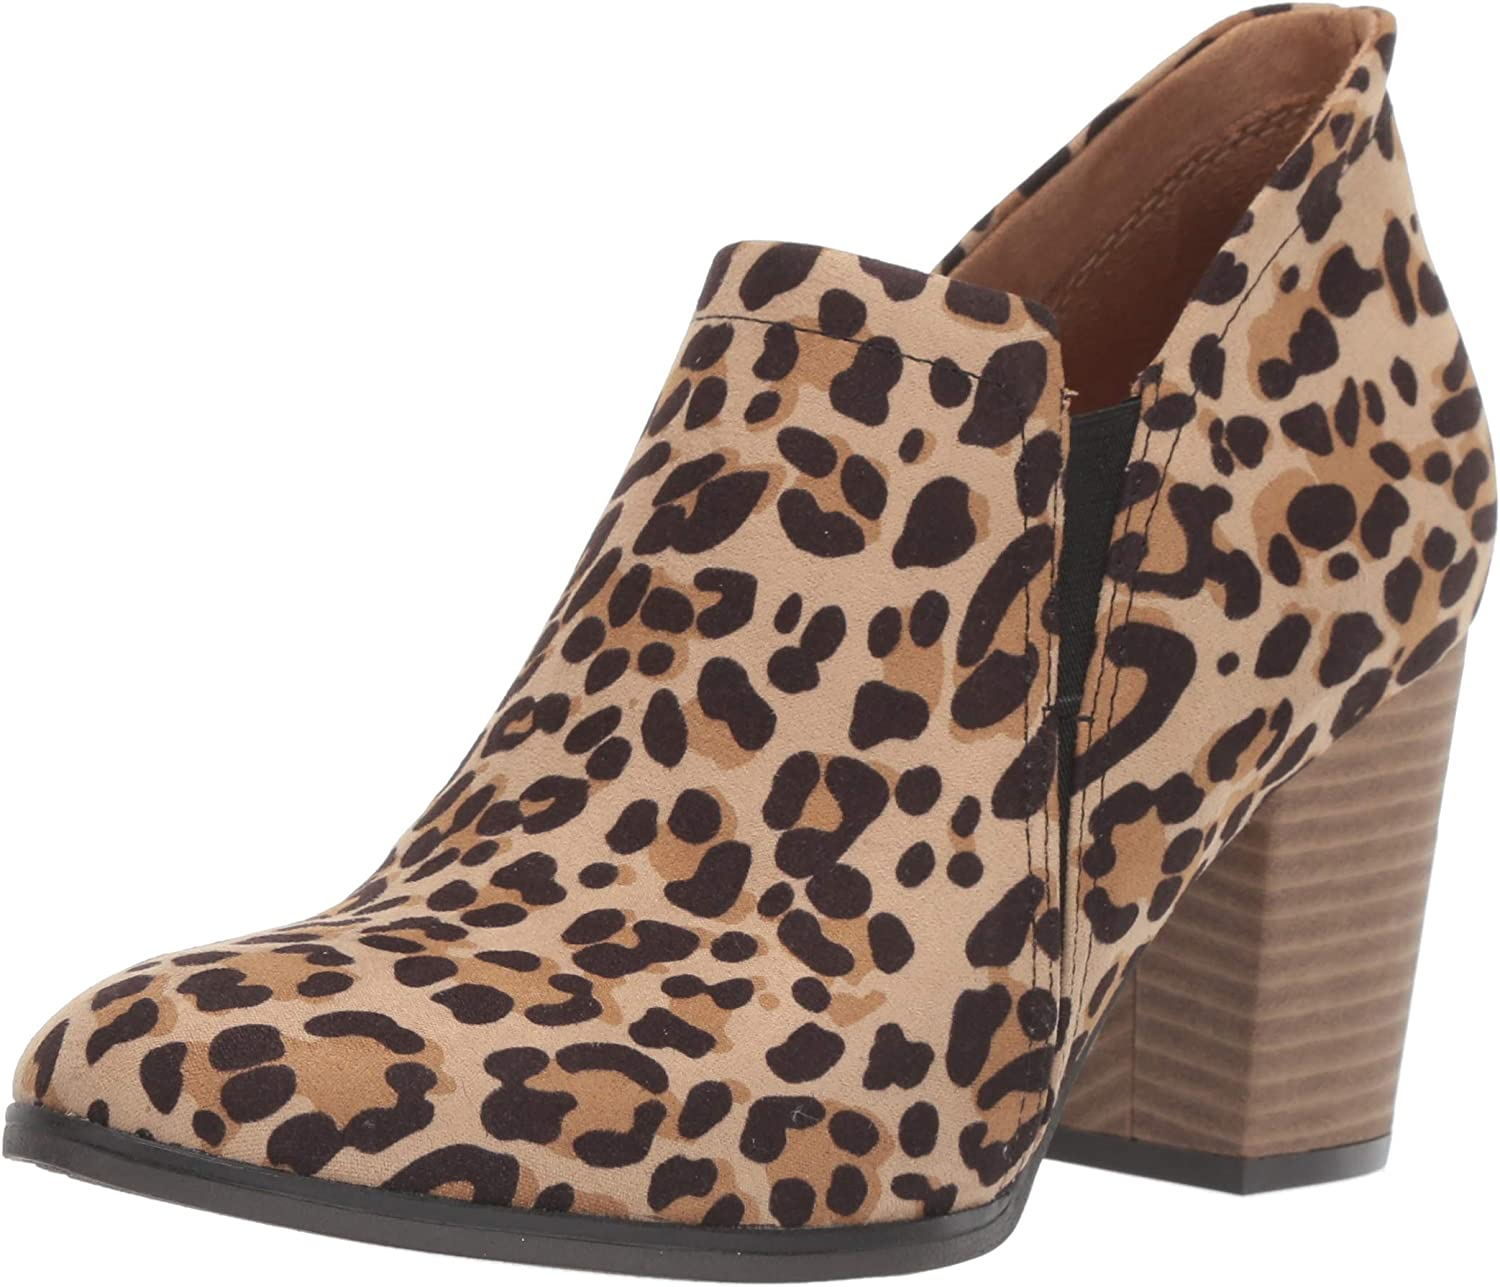 Dr. Scholl's Shoes Women's Max 71% OFF At the price of surprise All Boot Life My Ankle